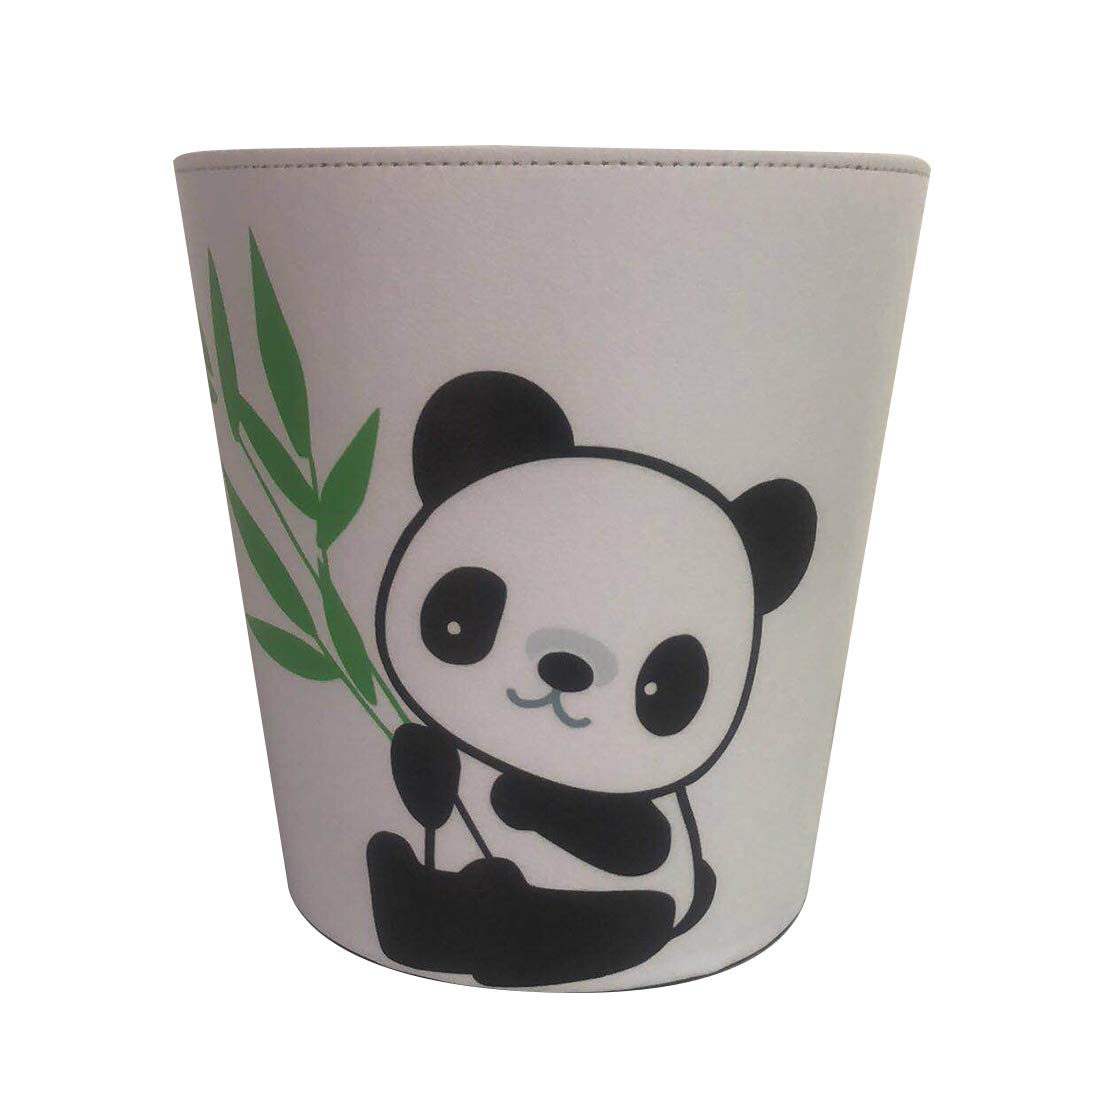 XSHION Trash Can,2.6 Gallon/10L Garbage Can Panda Pattern Leather Waterproof Wastebasket for Home - Type A